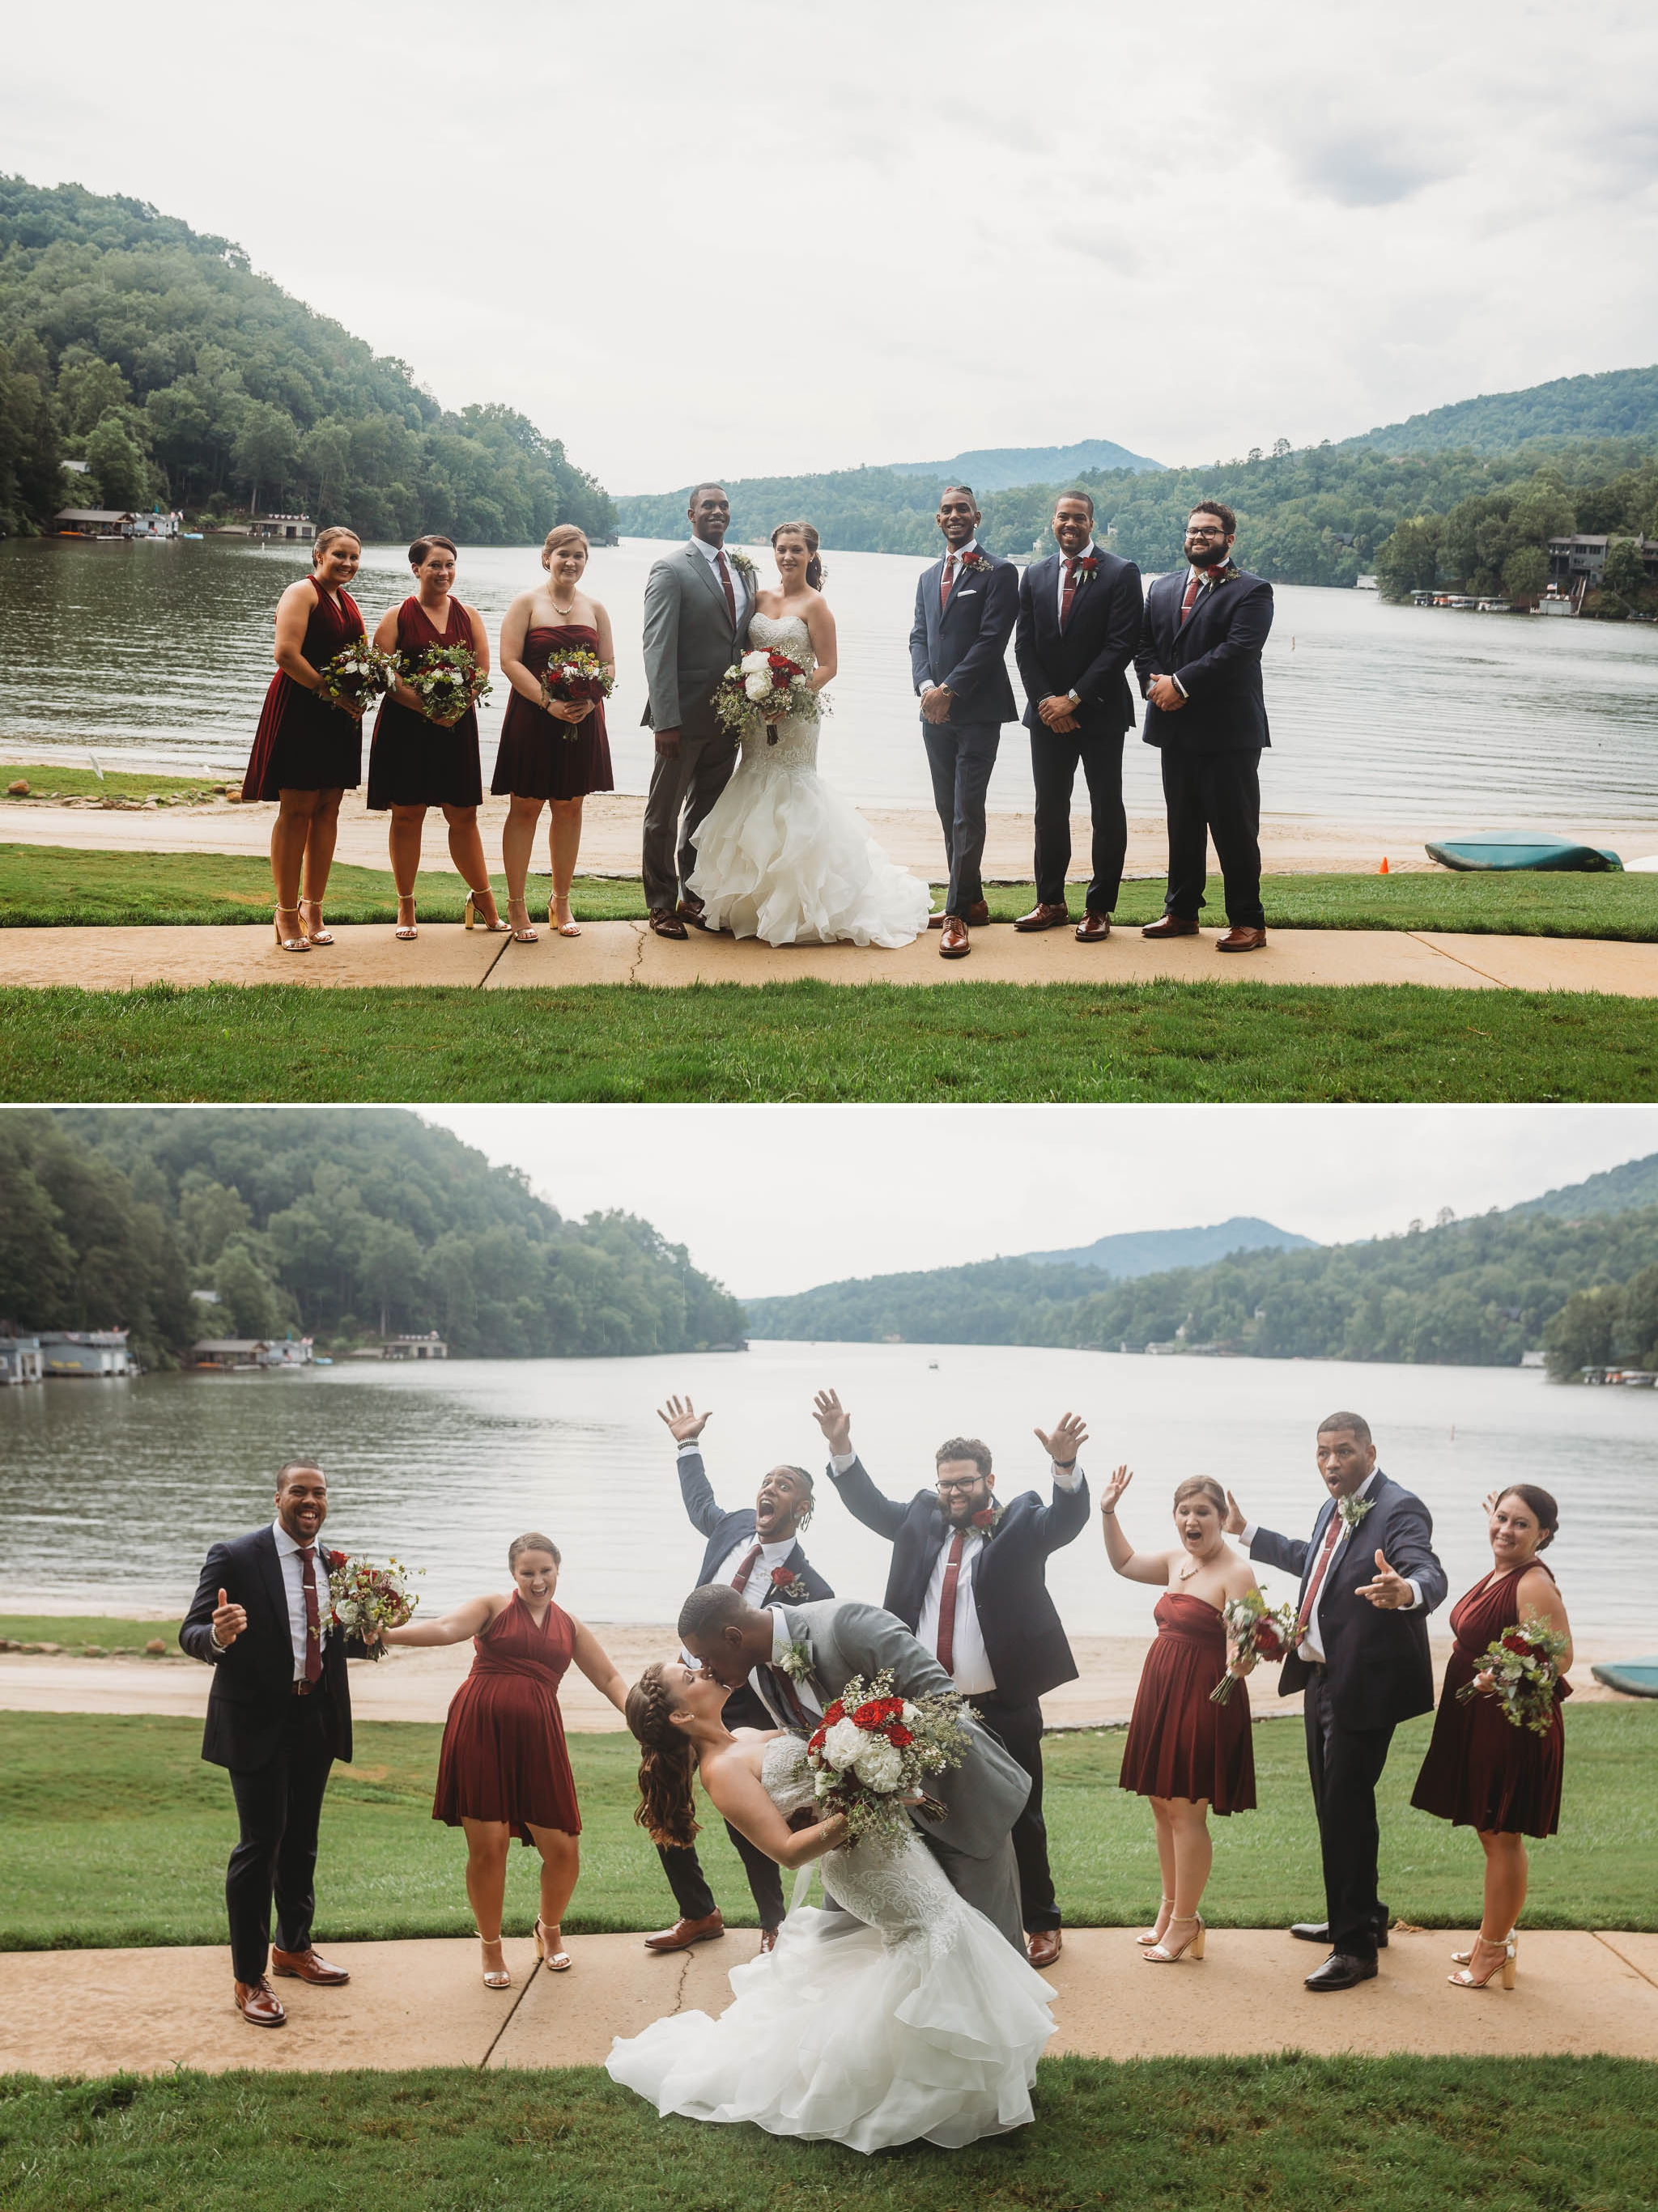 Wedding Party Formals - Rachel + Jamison - Rumbling Bald Resort, Lake Lure, NC - Asheville, North Carolina Wedding Photographer